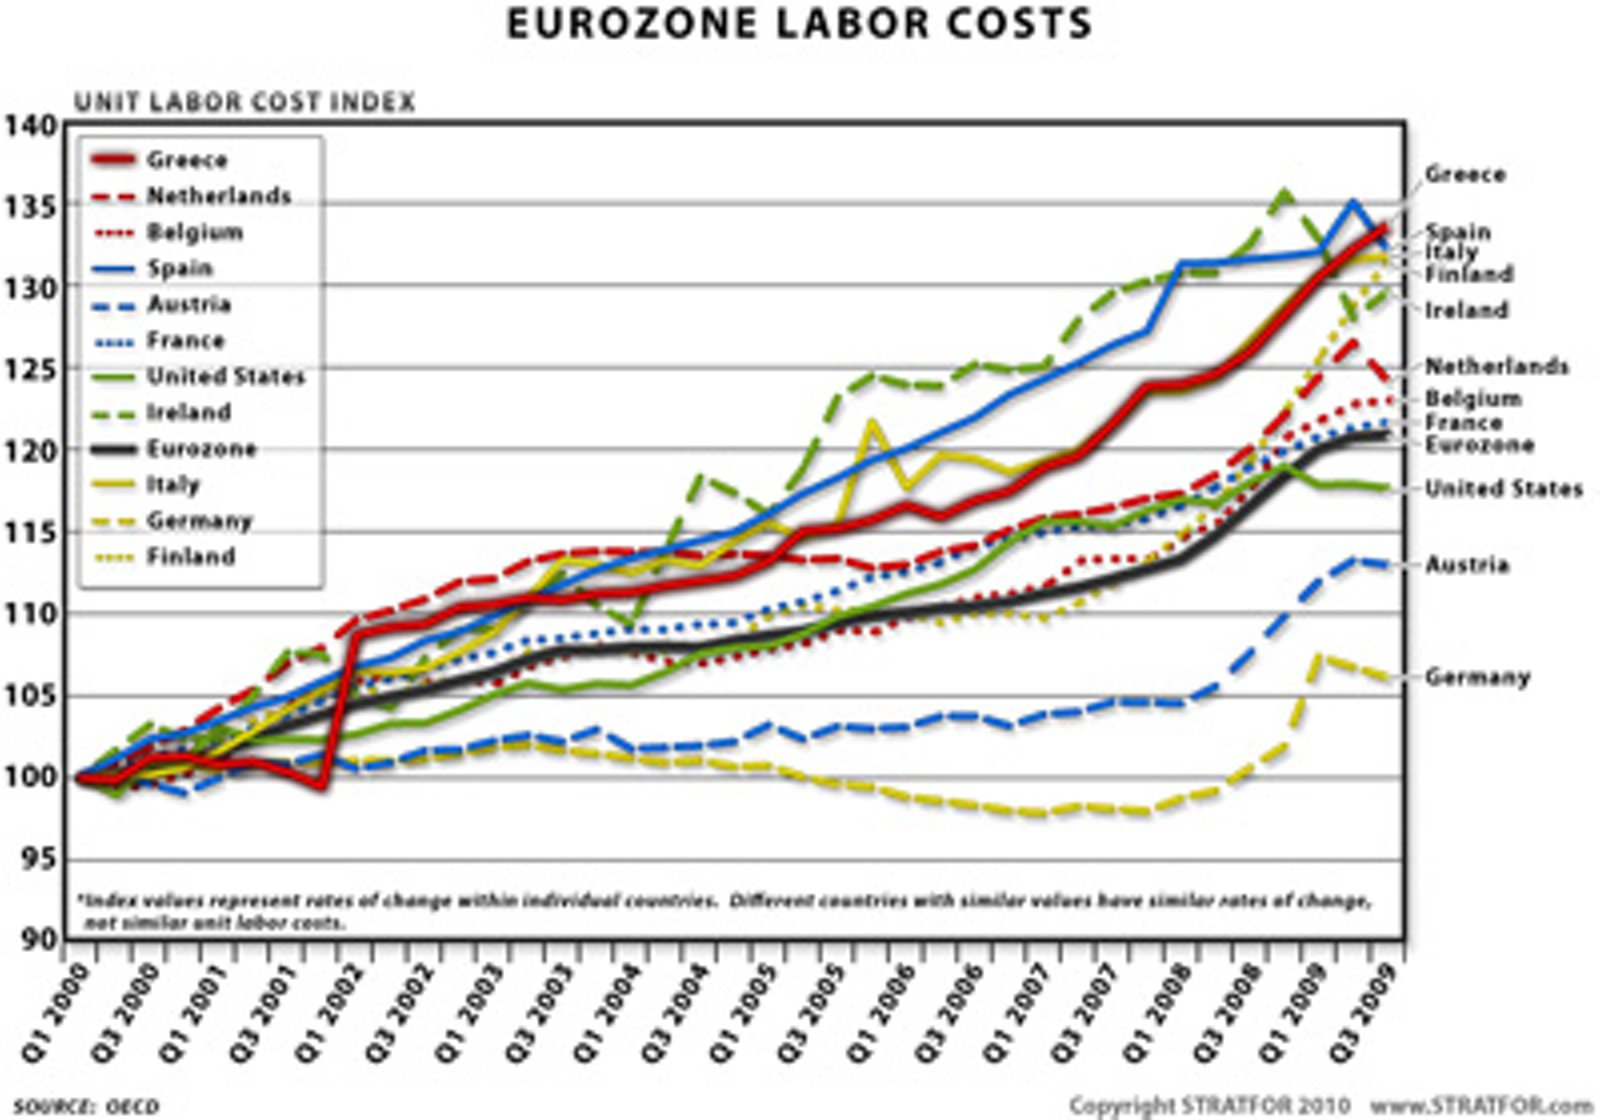 http://einarbb.blog.is/users/72/einarbb/img/eurozone_labor_costs.jpg